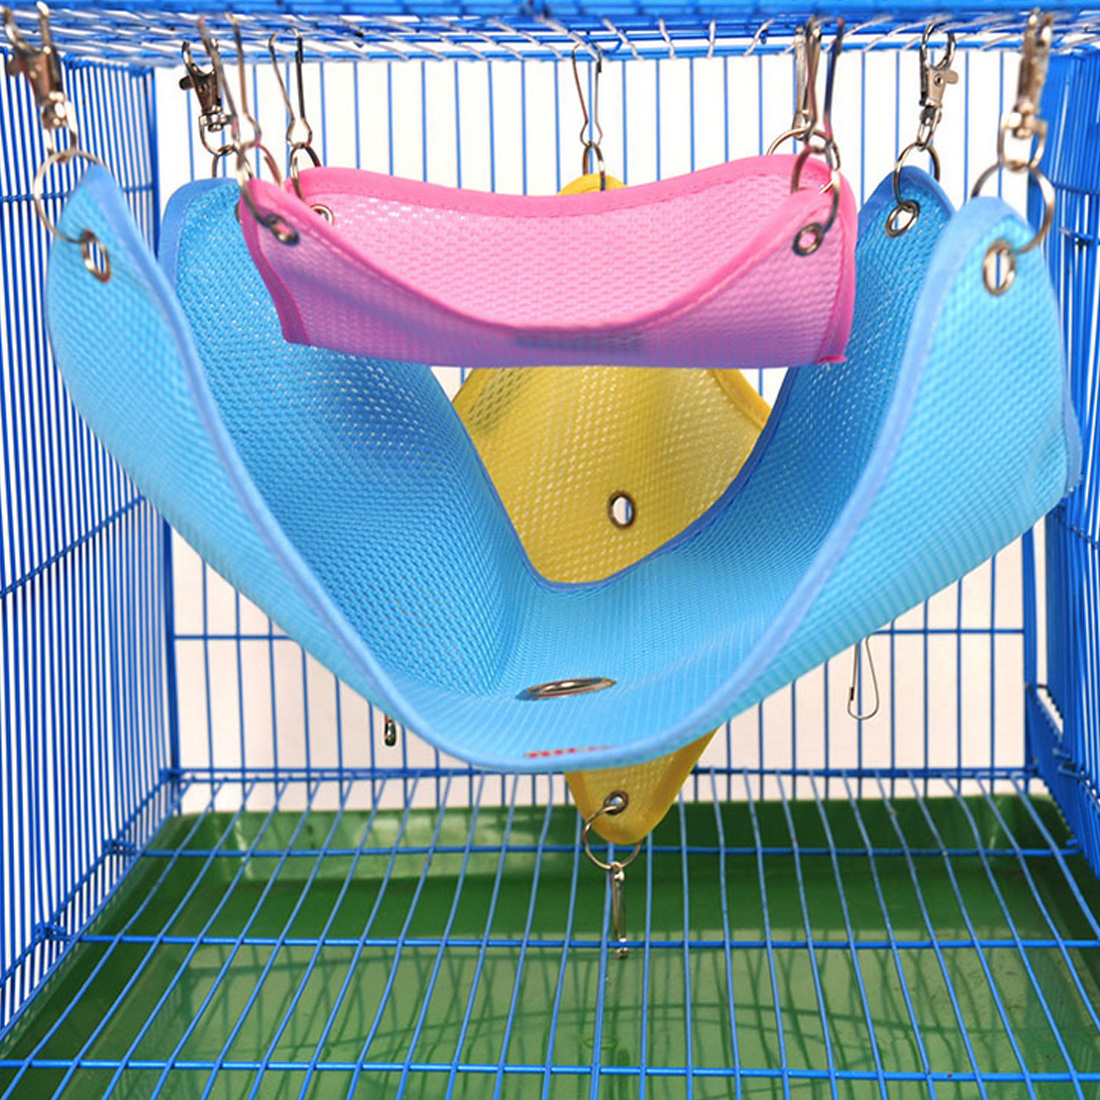 3Sizes Pets Hammock Hamster Rat Parrot Ferret Hamster Hanging Bed Cushion Hamster House Cage Accessories For Hamsters